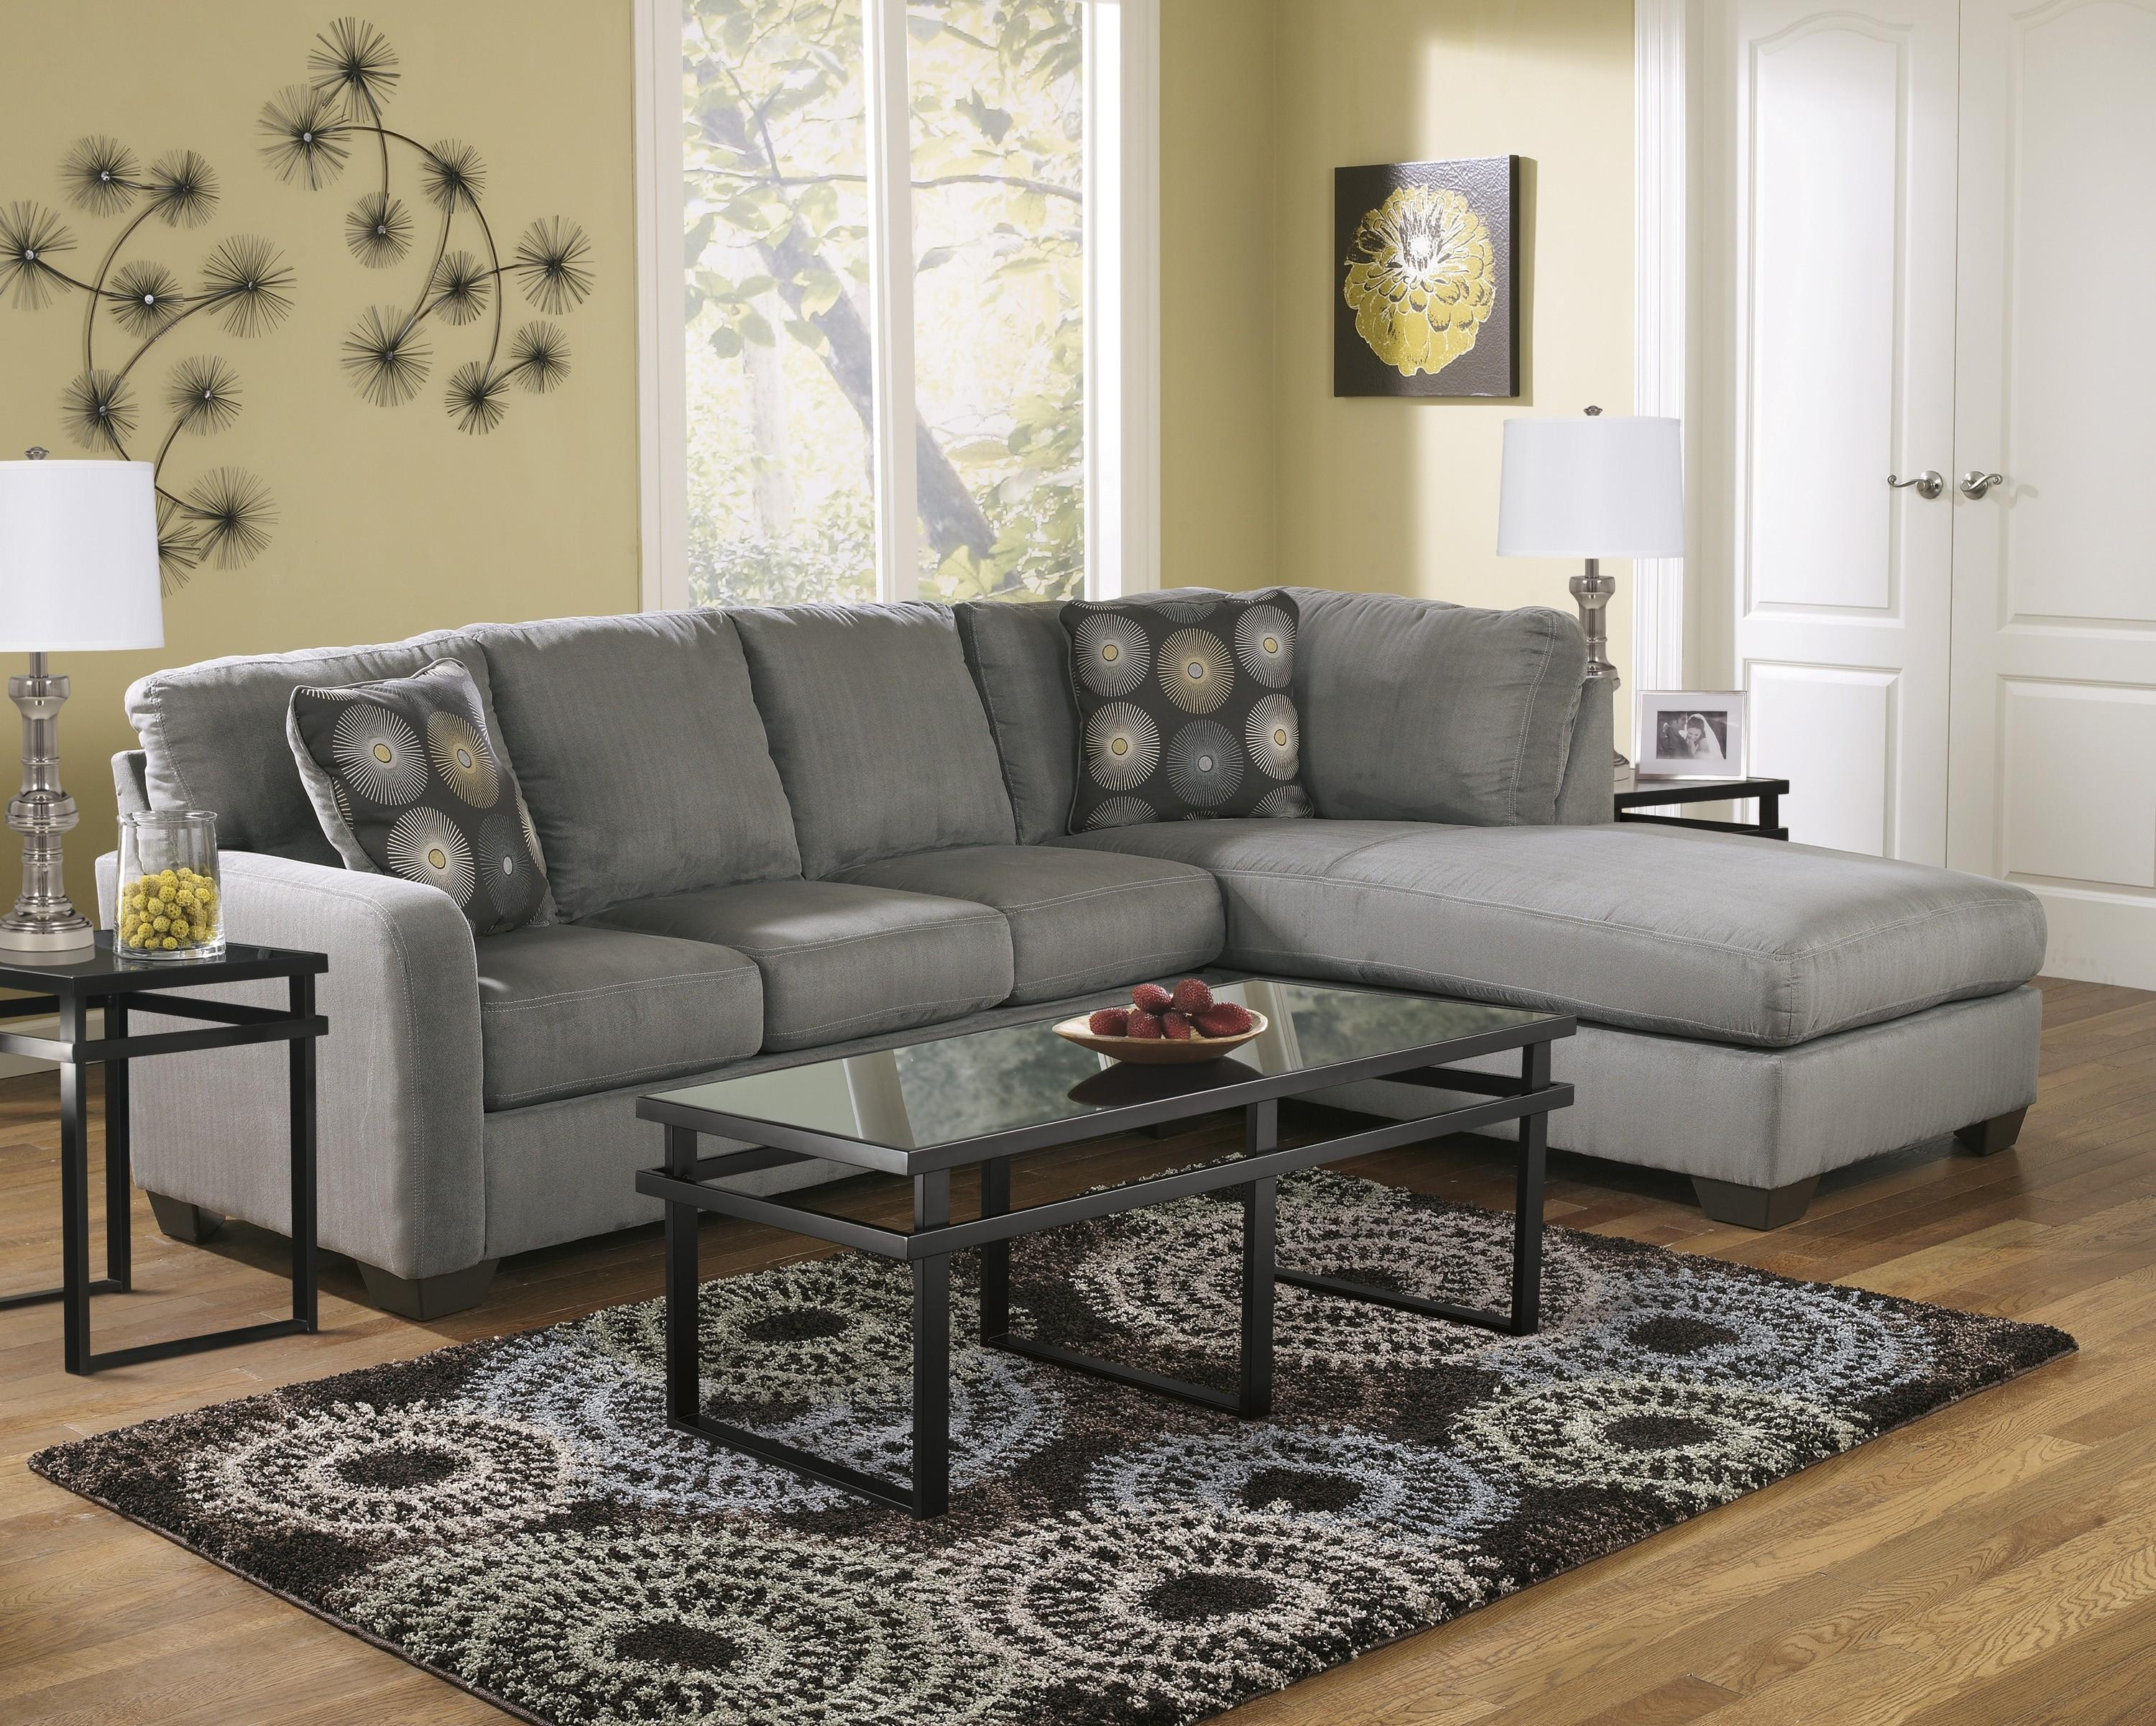 Zella Charcoal 2 Piece Sectional Sofa For $ (View 12 of 23)